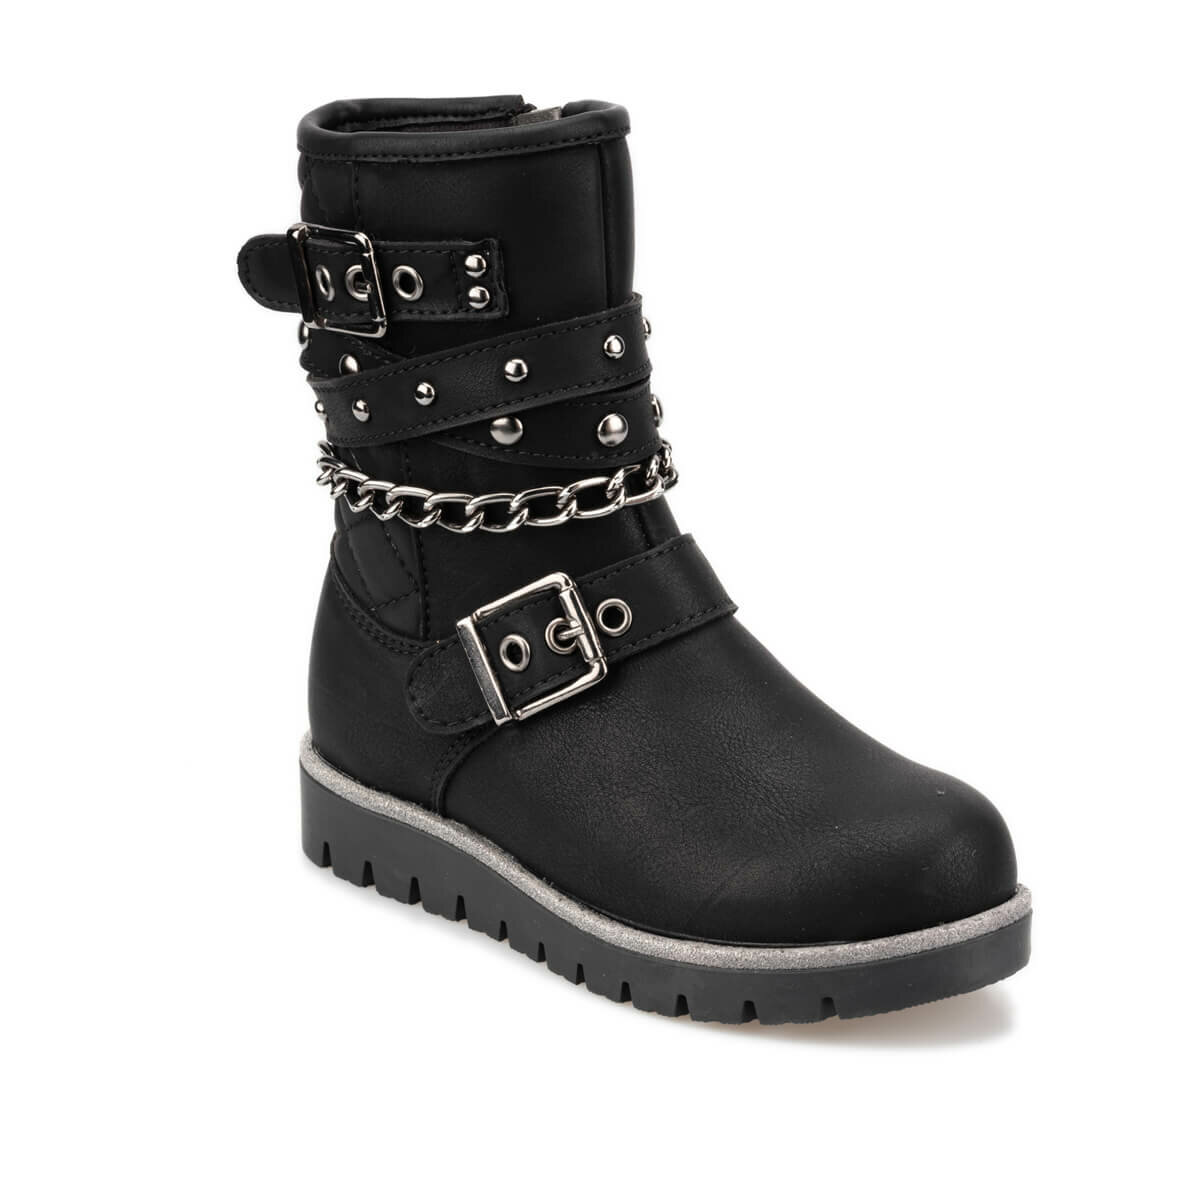 FLO 92.511829.P Black Female Child Boots Polaris